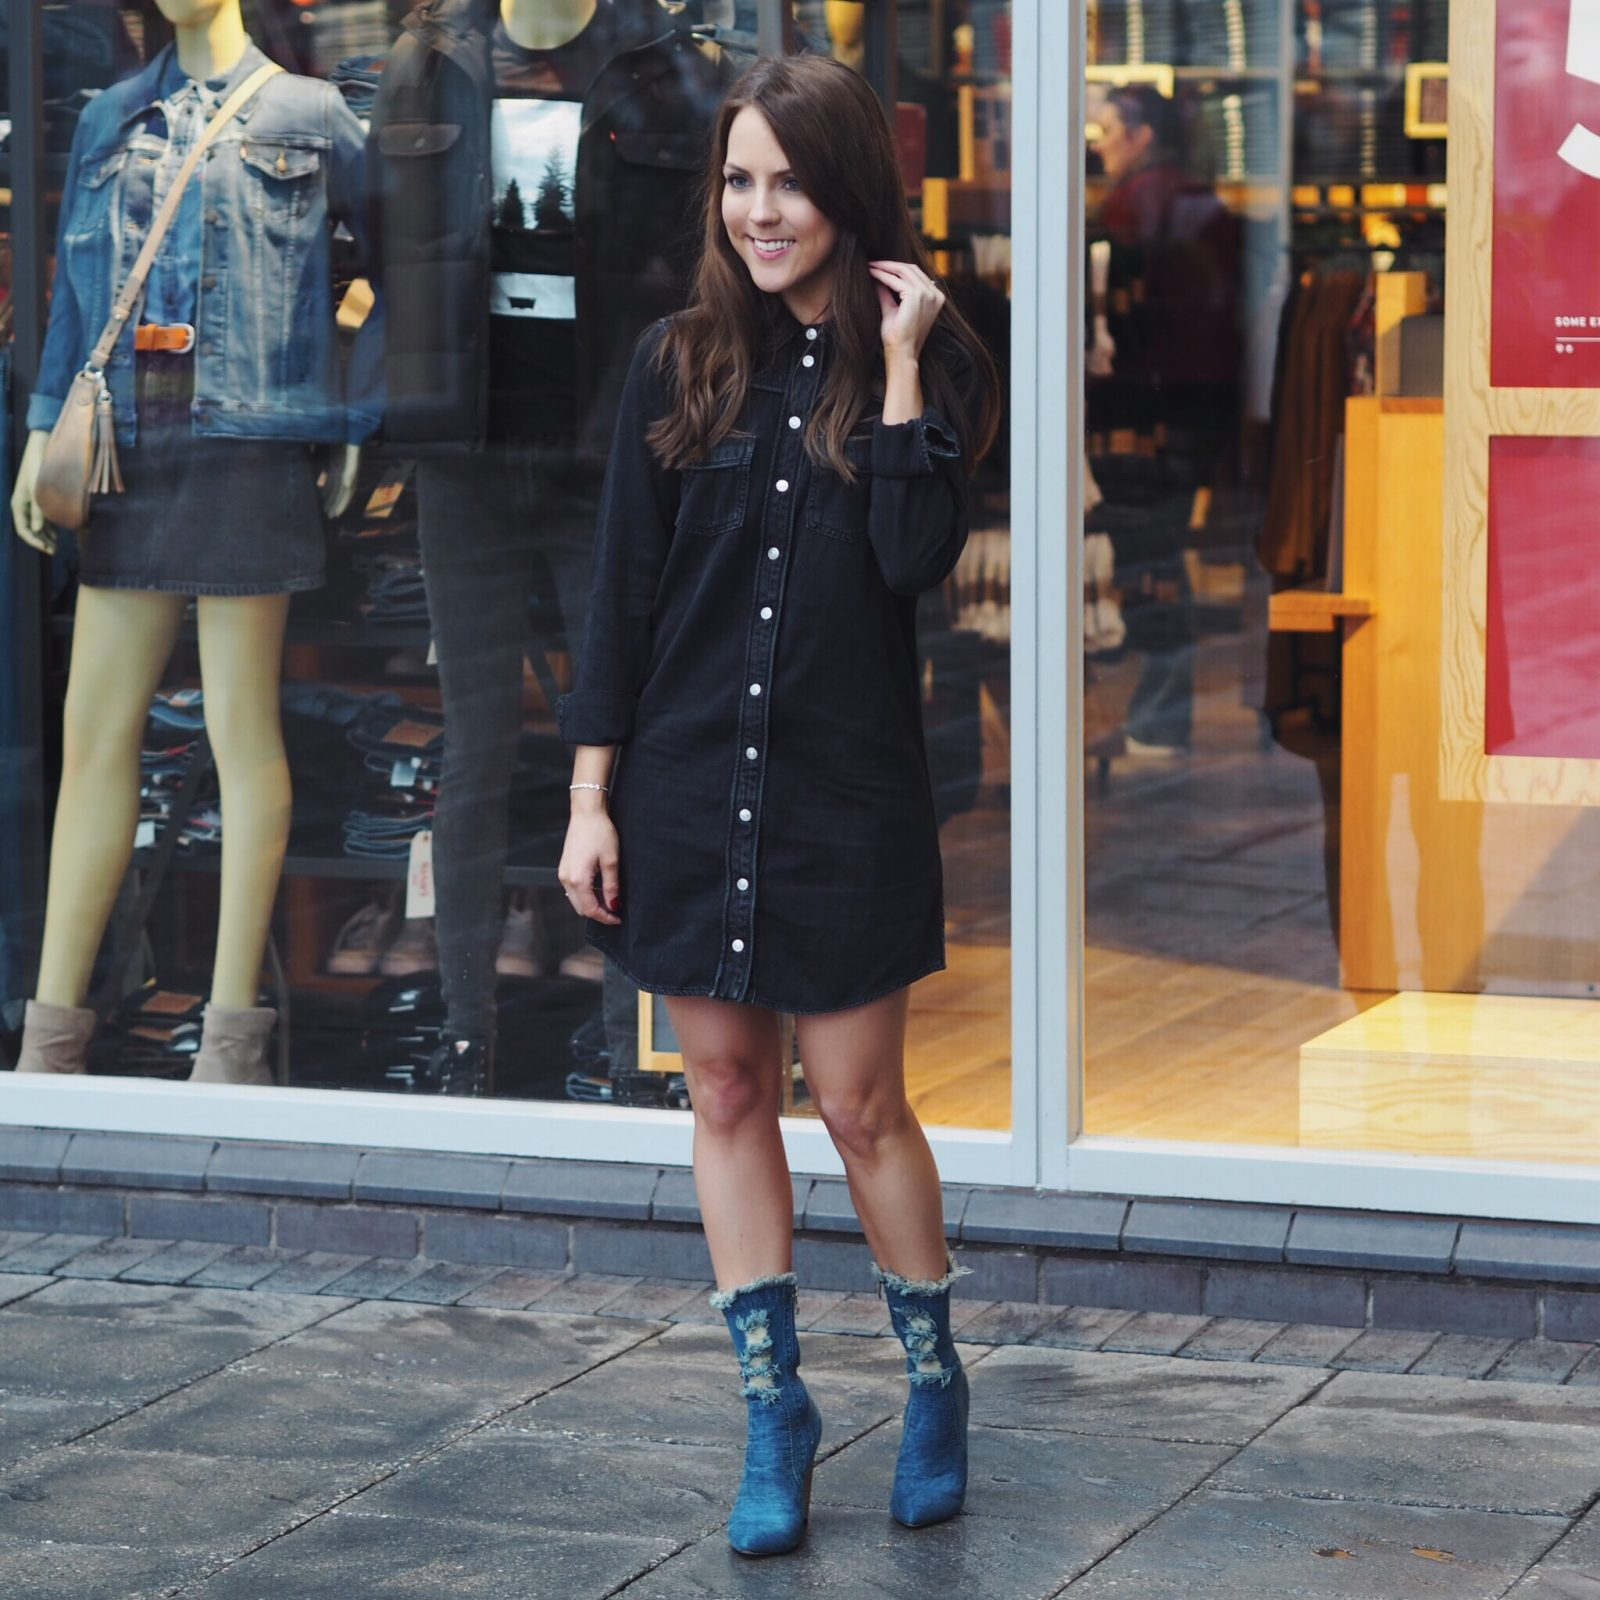 Topshop denim dress and Ego footwear